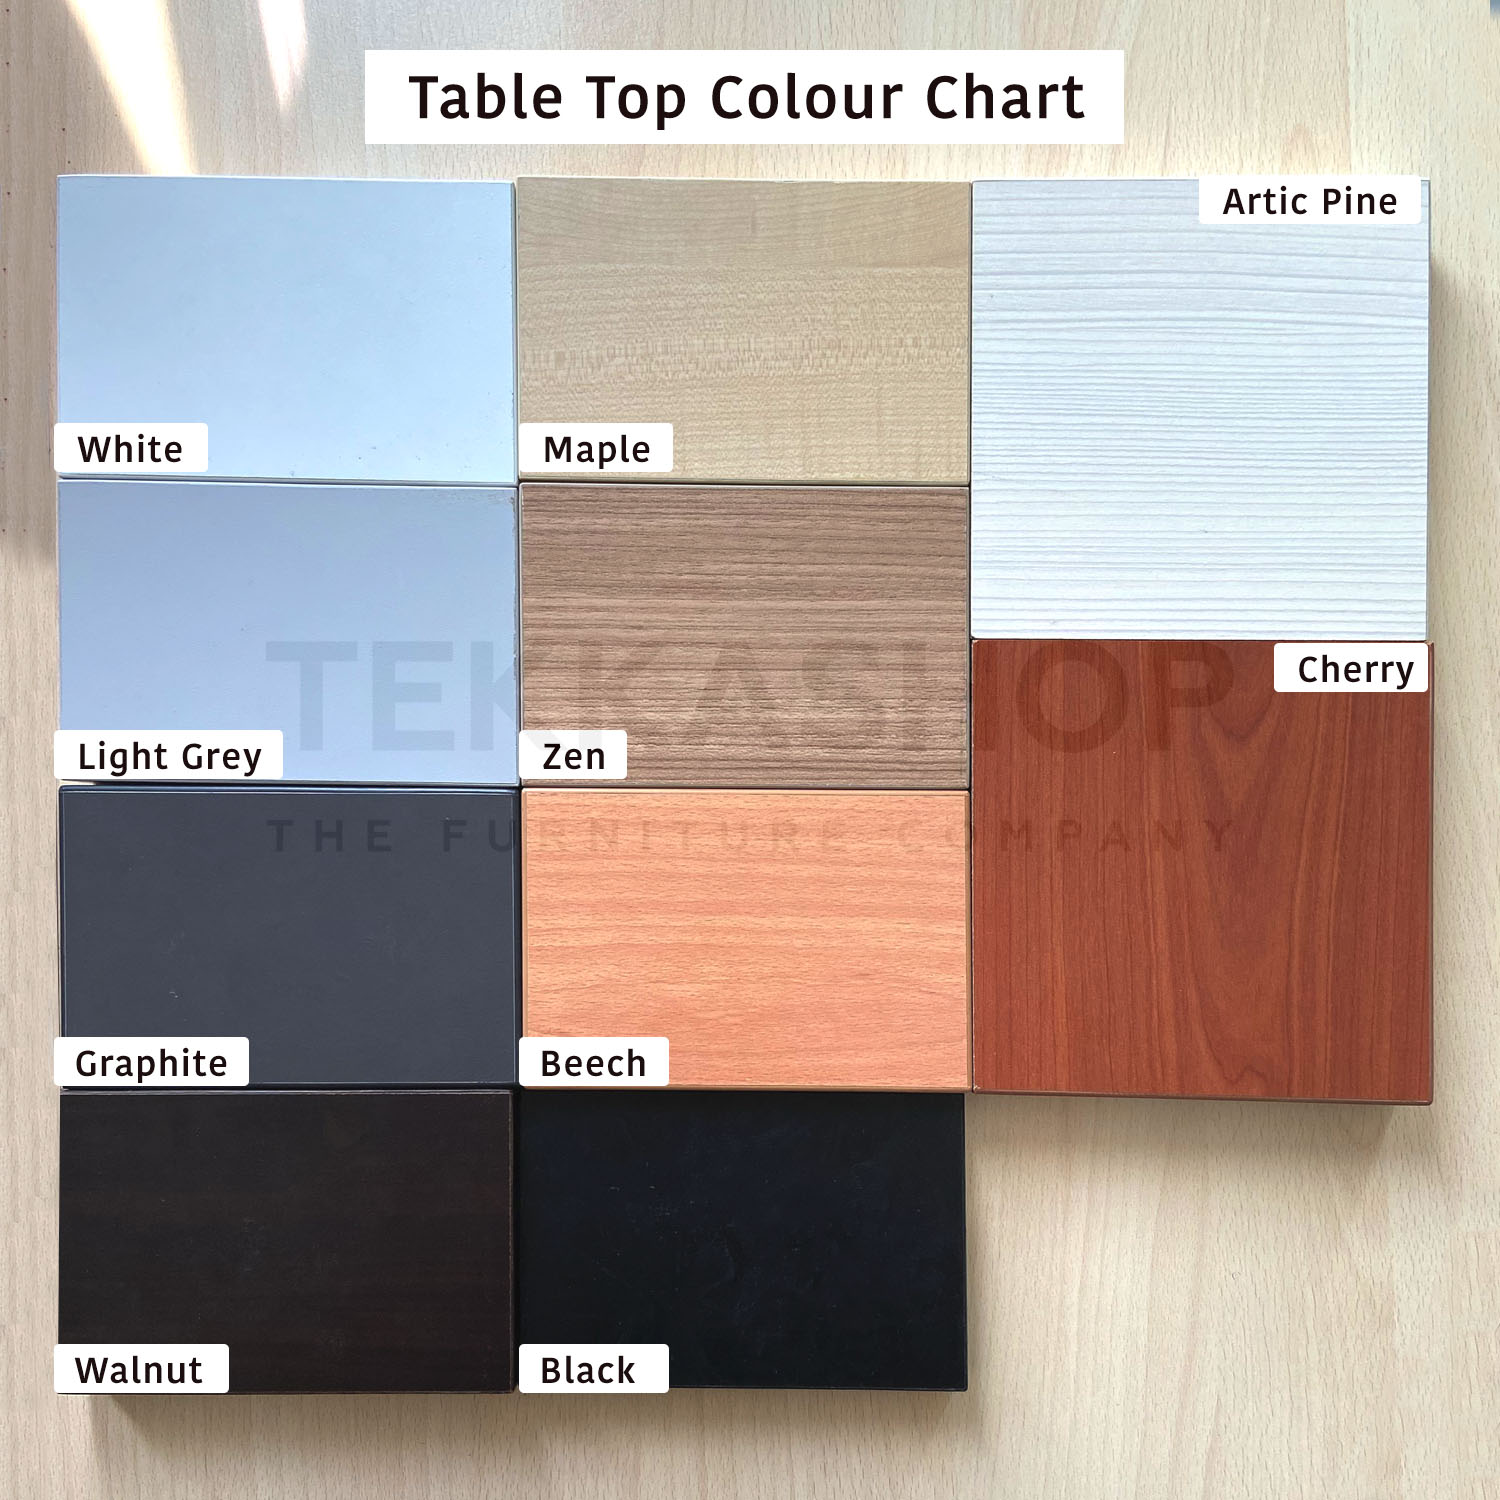 Table Top Colour Chart.jpg